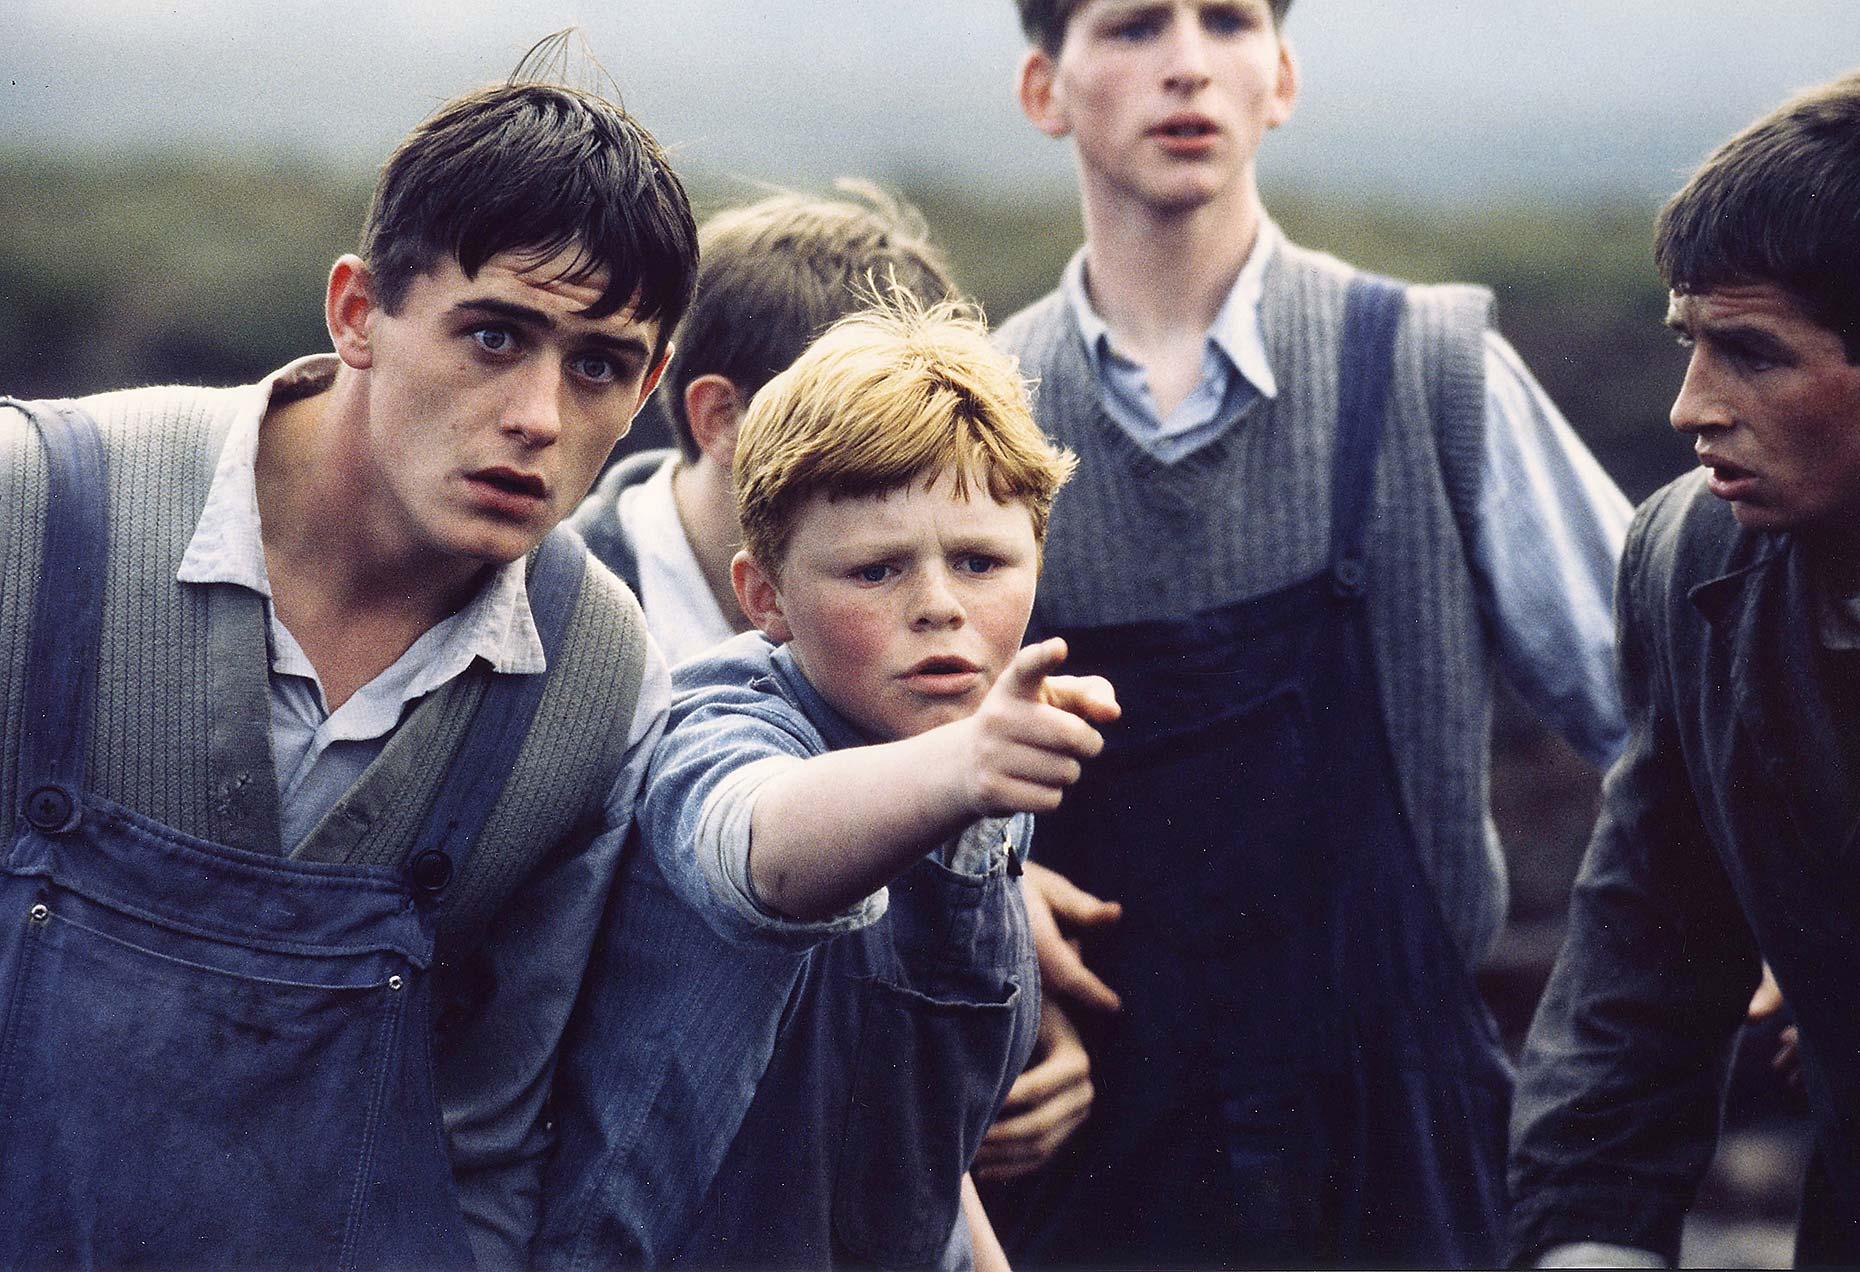 THE BUTCHER BOY : Eamonn Owens (4)